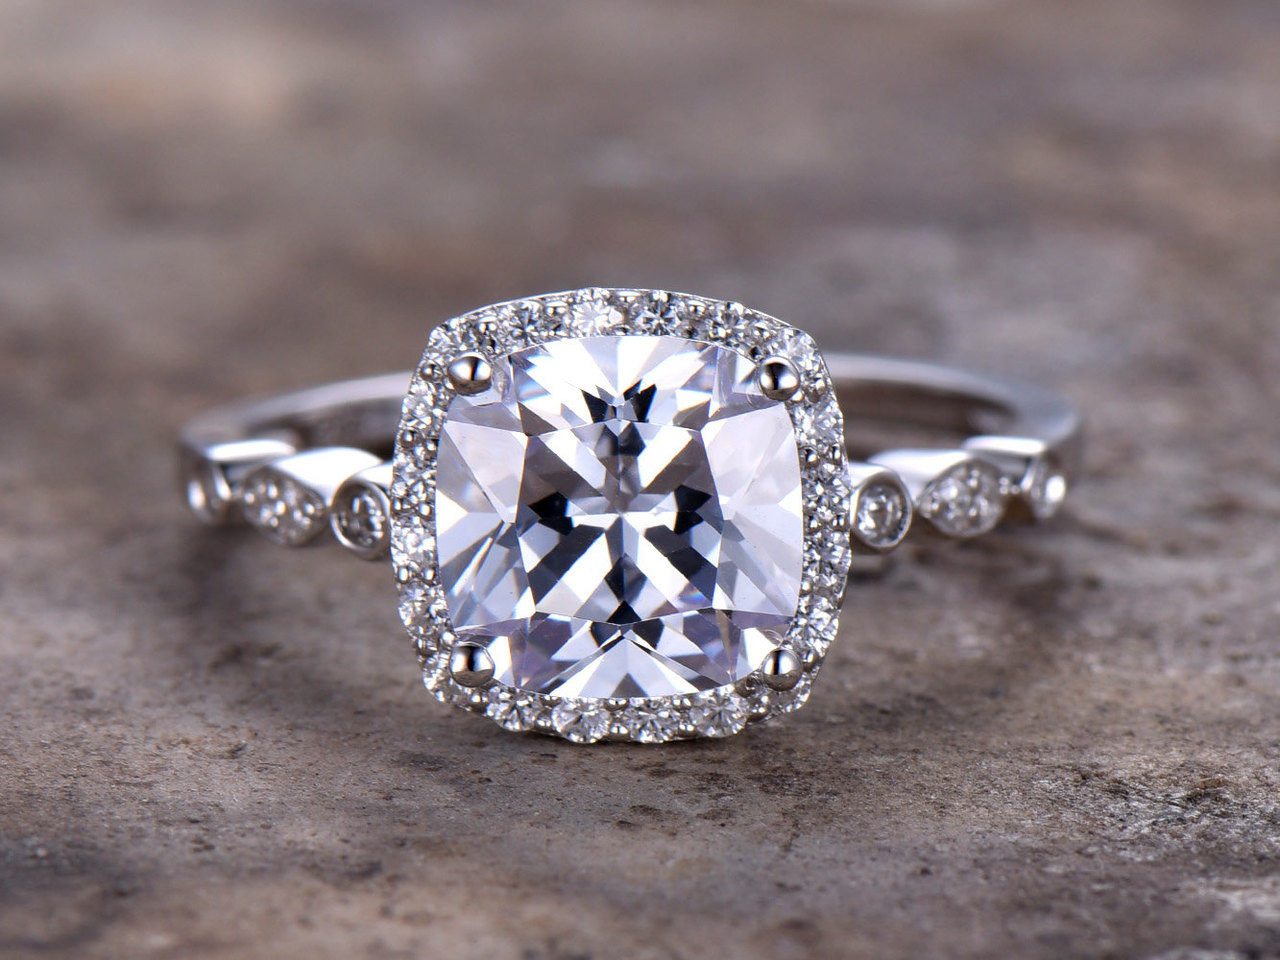 Vintage Style Engagement Ring Antique Cushion Cut Engagement Ring Cushion Cut Solitaire Engagement Ring